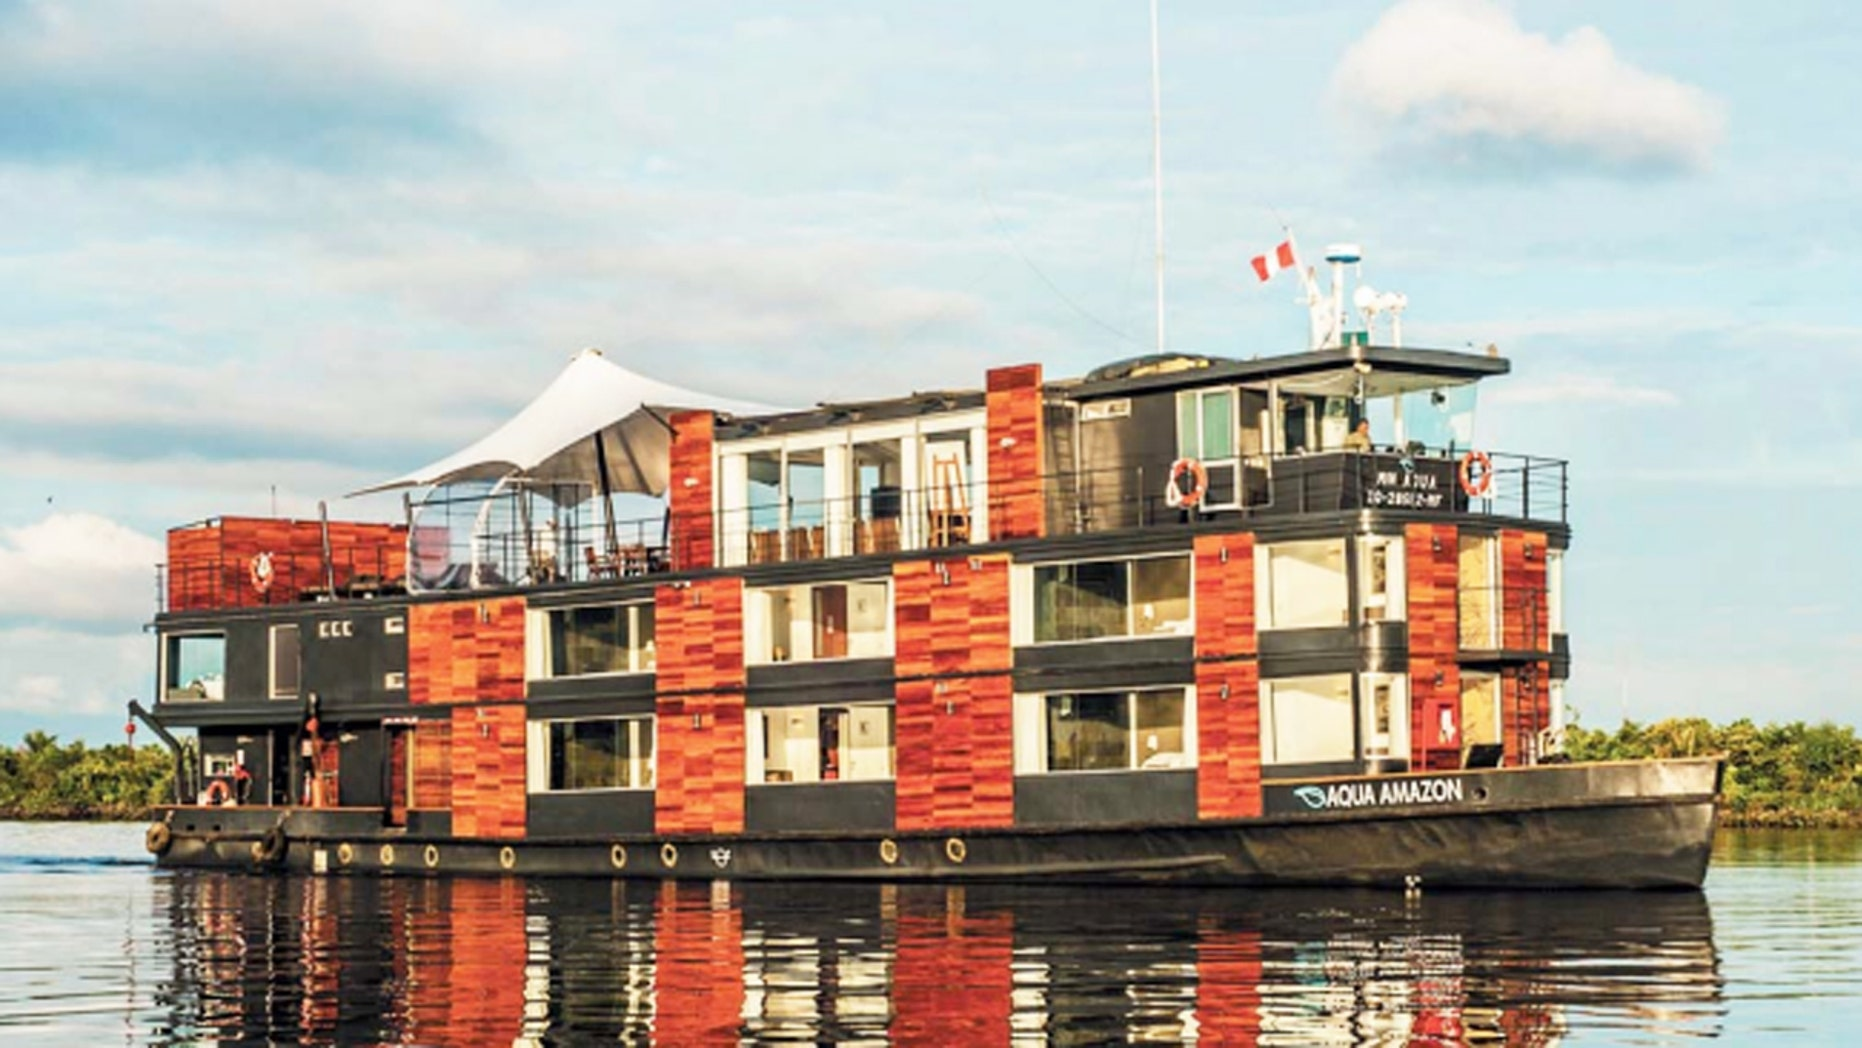 The 12-suite, 24-passenger river cruise vessel Aqua Amazon was recently renovated in 2015.